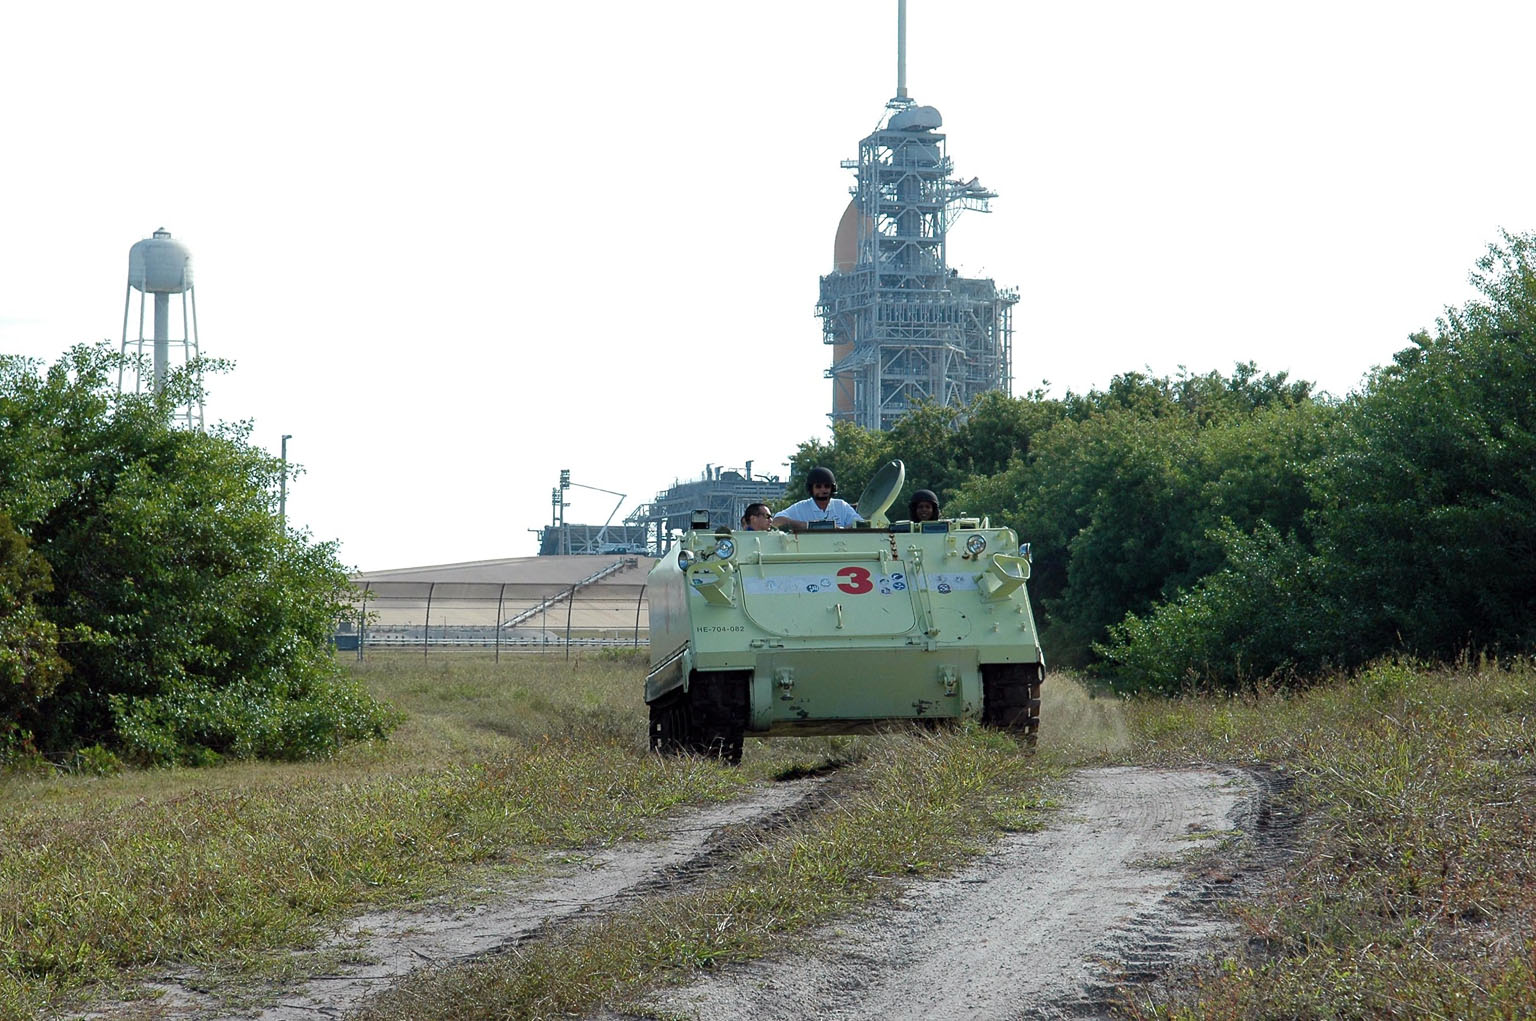 KENNEDY SPACE CENTER, FLA. -- STS-116 Mission Specialist Joan Higginbotham practices driving the M-113 armored personnel carrier away from Launch Pad 39B. On the M-113, Pilot William Oefelein is at left and Capt. George Hoggard, who is astronaut rescue team leader, in between Oefelein and Higginbotham. In the background is the fixed service structure, with the 80-foot-tall lightning mast on top, and Space Shuttle Discovery -- only the orange external tank can be seen. The mission crew is at KSC for terminal countdown demonstration test (TCDT) activities that are preparation for launch. The M-113 could be used to move the crew quickly away from the launch pad in the event of an emergency. The STS-116 mission is No. 20 to the International Space Station and construction flight 12A.1. The mission payload is the SPACEHAB module, the P5 integrated truss structure and other key components. Launch is scheduled for no earlier than Dec. 7. Photo credit: NASA/Kim Shiflett